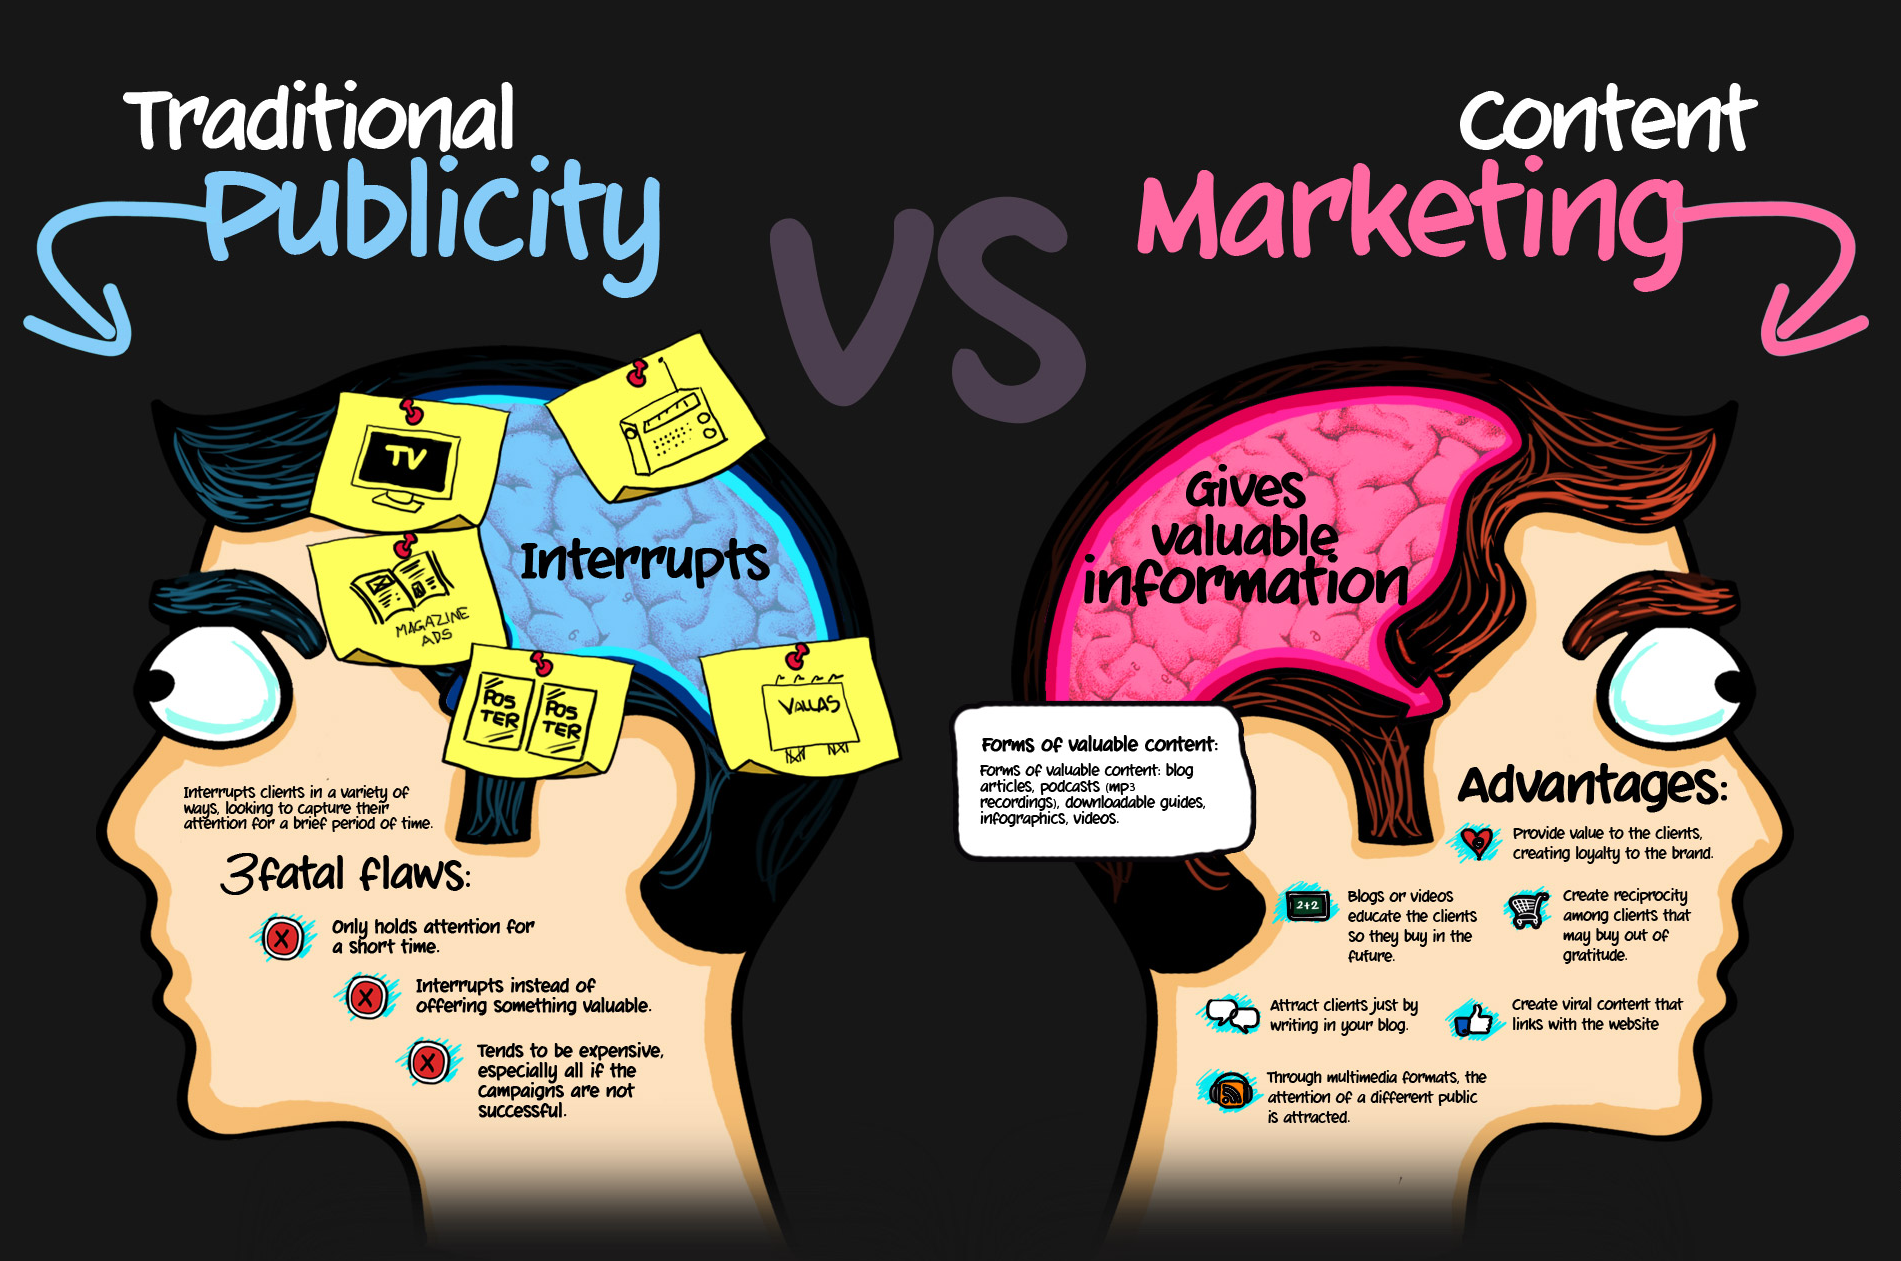 Traditional PR vs. content marketing